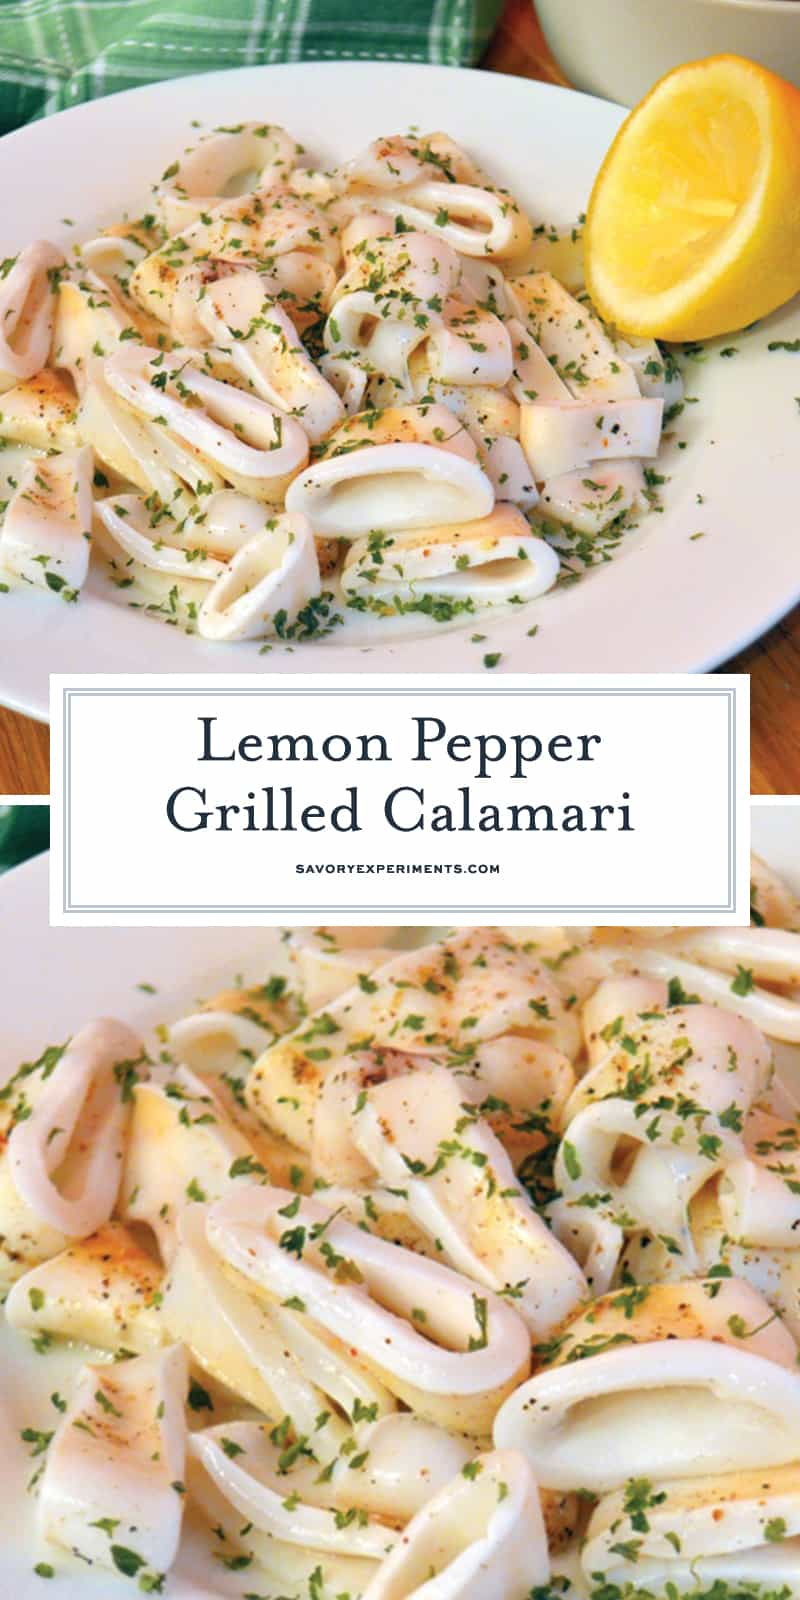 Lemon Pepper Grilled Calamari brings the flavors of the sea right to your dinner table. You won't be disappointed by this mouth-watering recipe. #grilledcalamari #calamari www.savoryexperiments.com